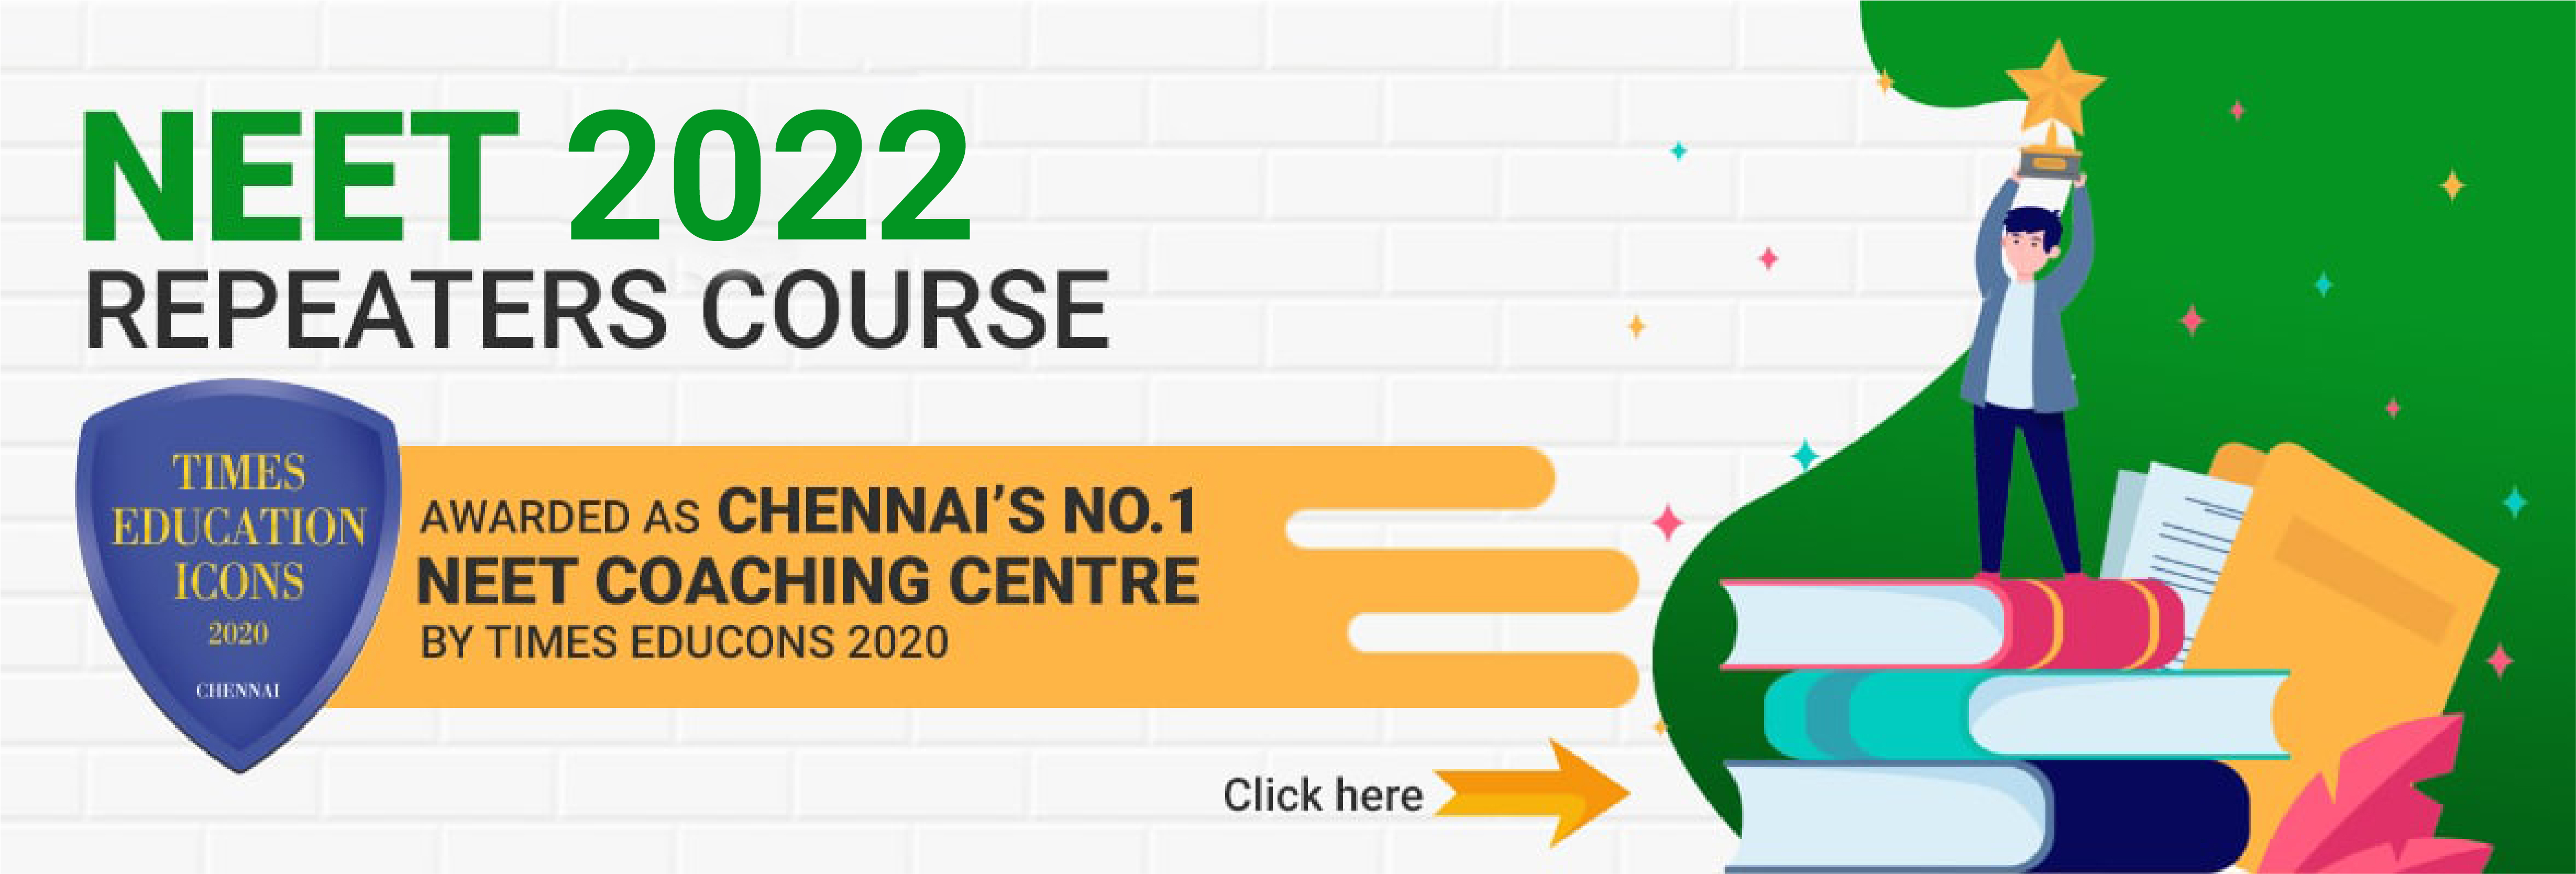 VVT-Coaching–neet-repeaters-course-2021